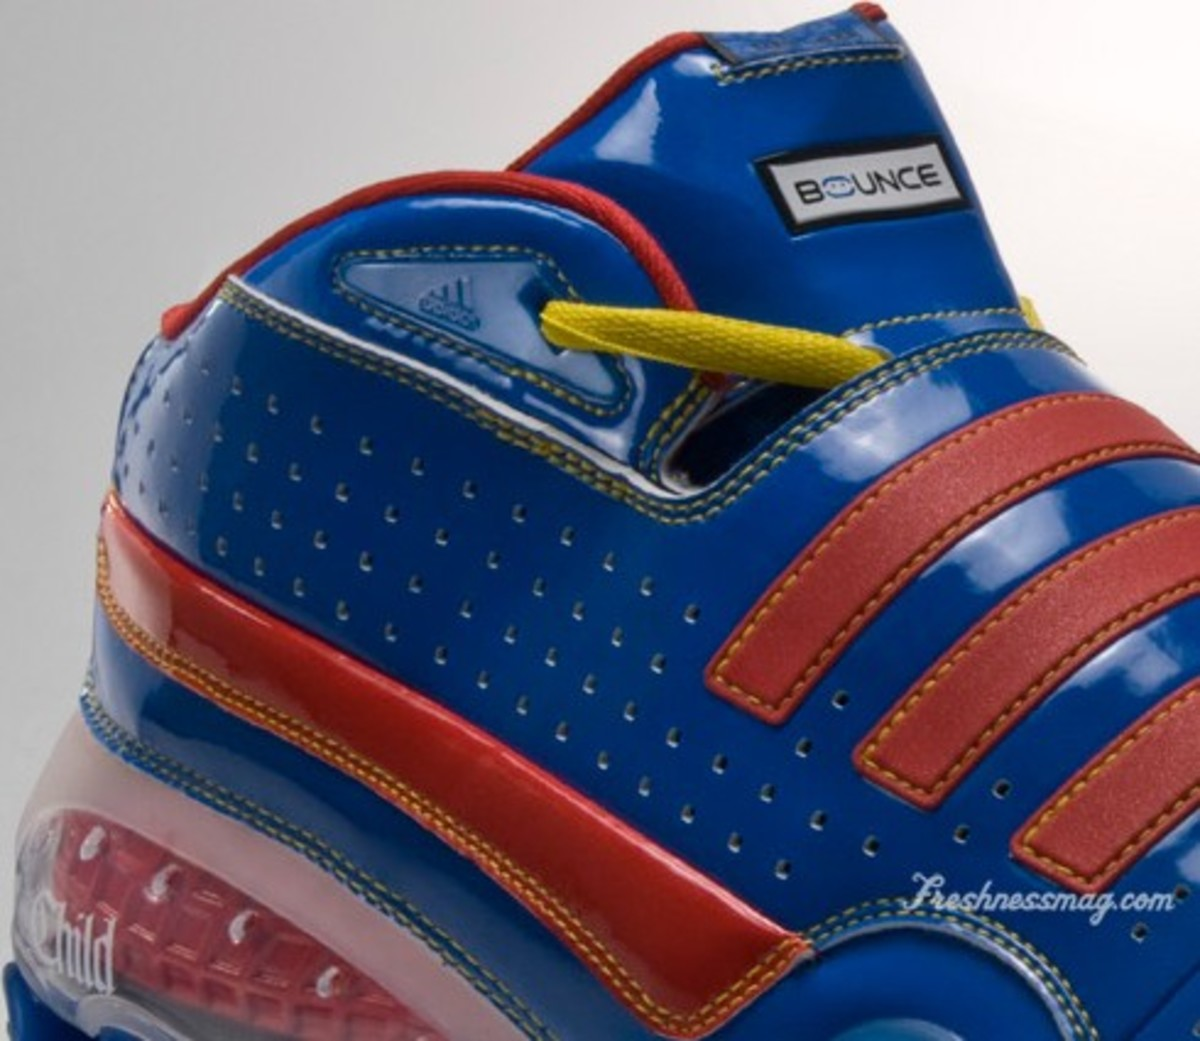 adidas - TS Bounce Commander - Dwright Howard Superman Edition | 2009 Slam Dunk Contest